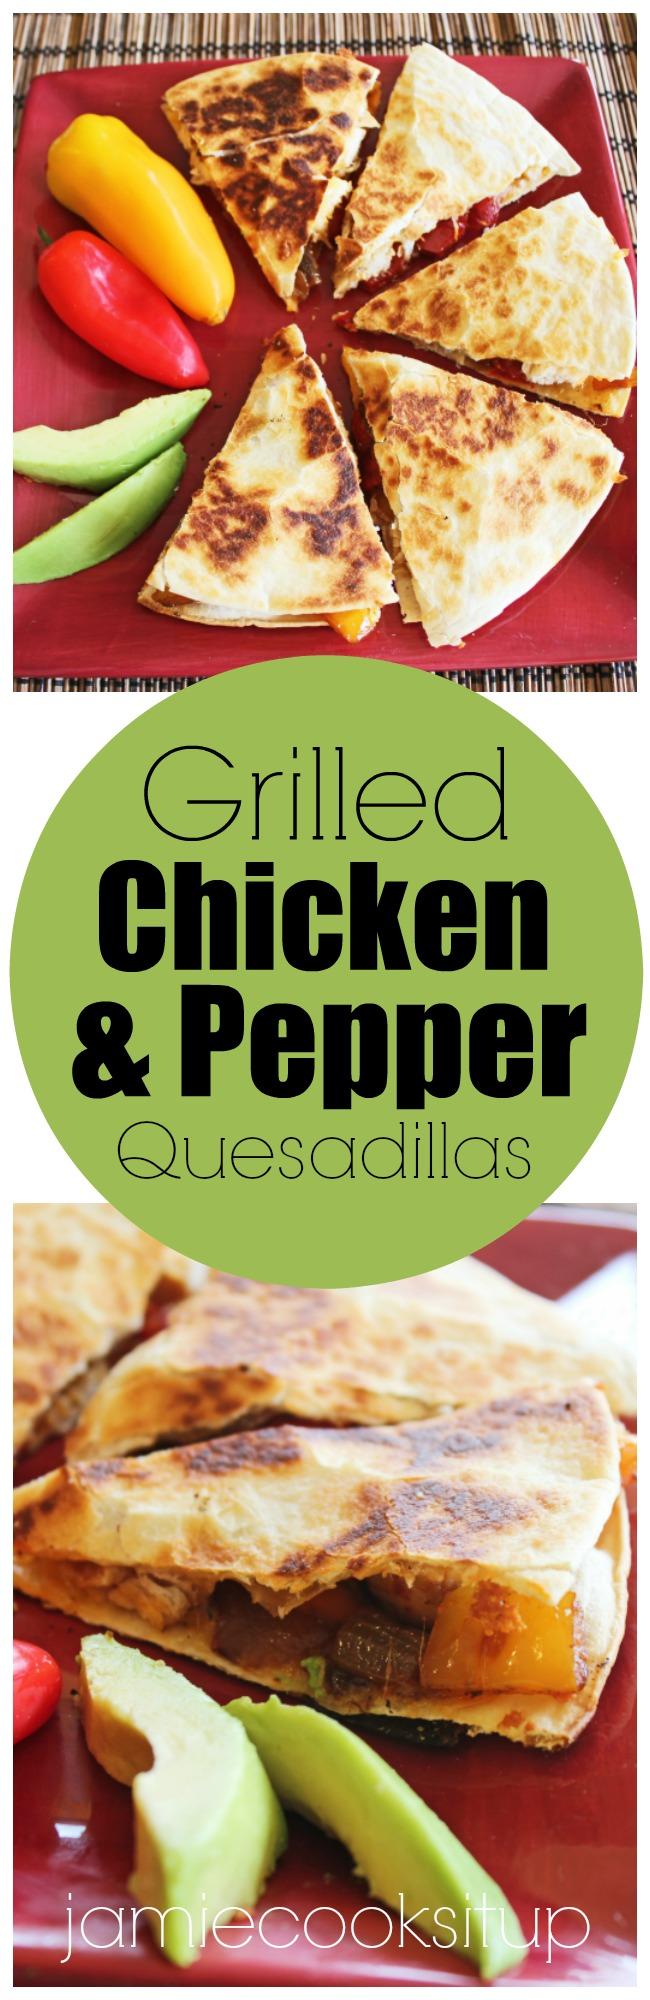 Grilled Chicken and Pepper Quesadillas from Jamie Cooks It Up!